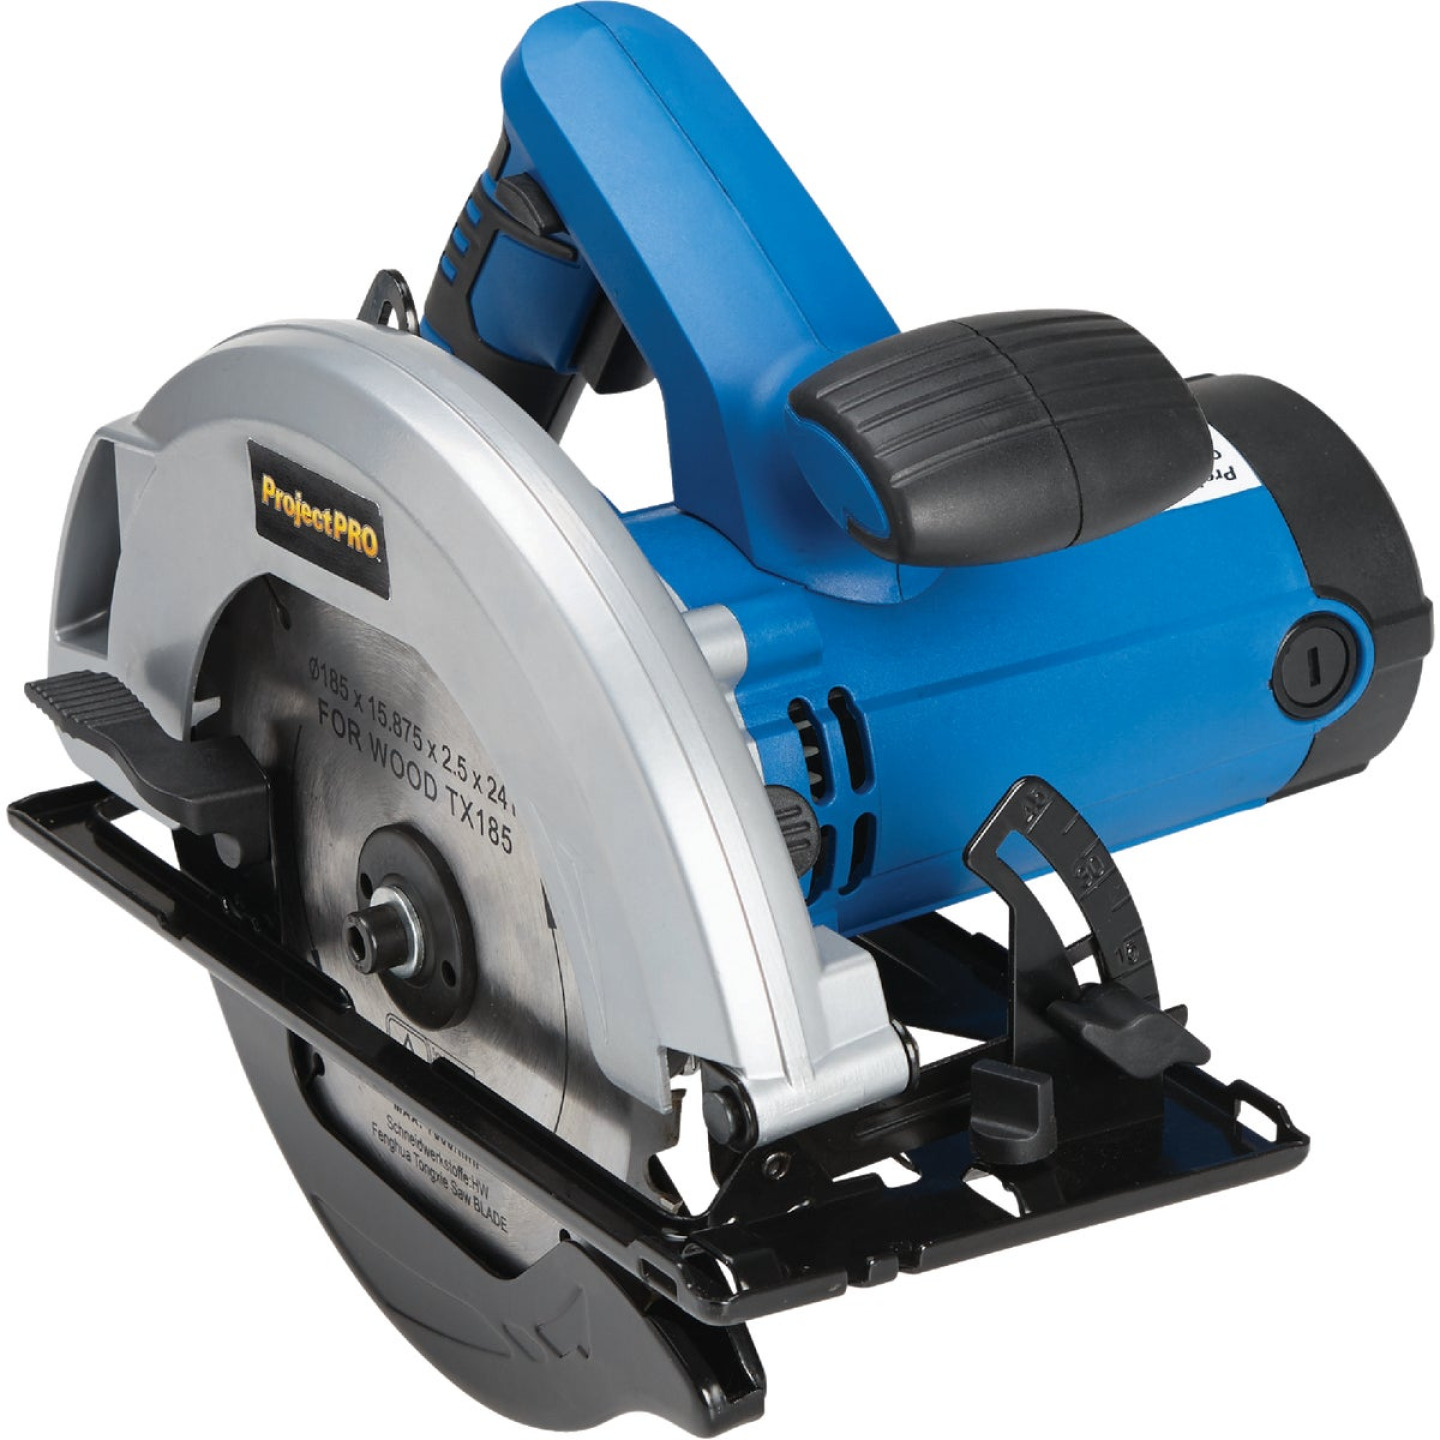 Project Pro 7-1/4 In. 12-Amp Circular Saw Image 1